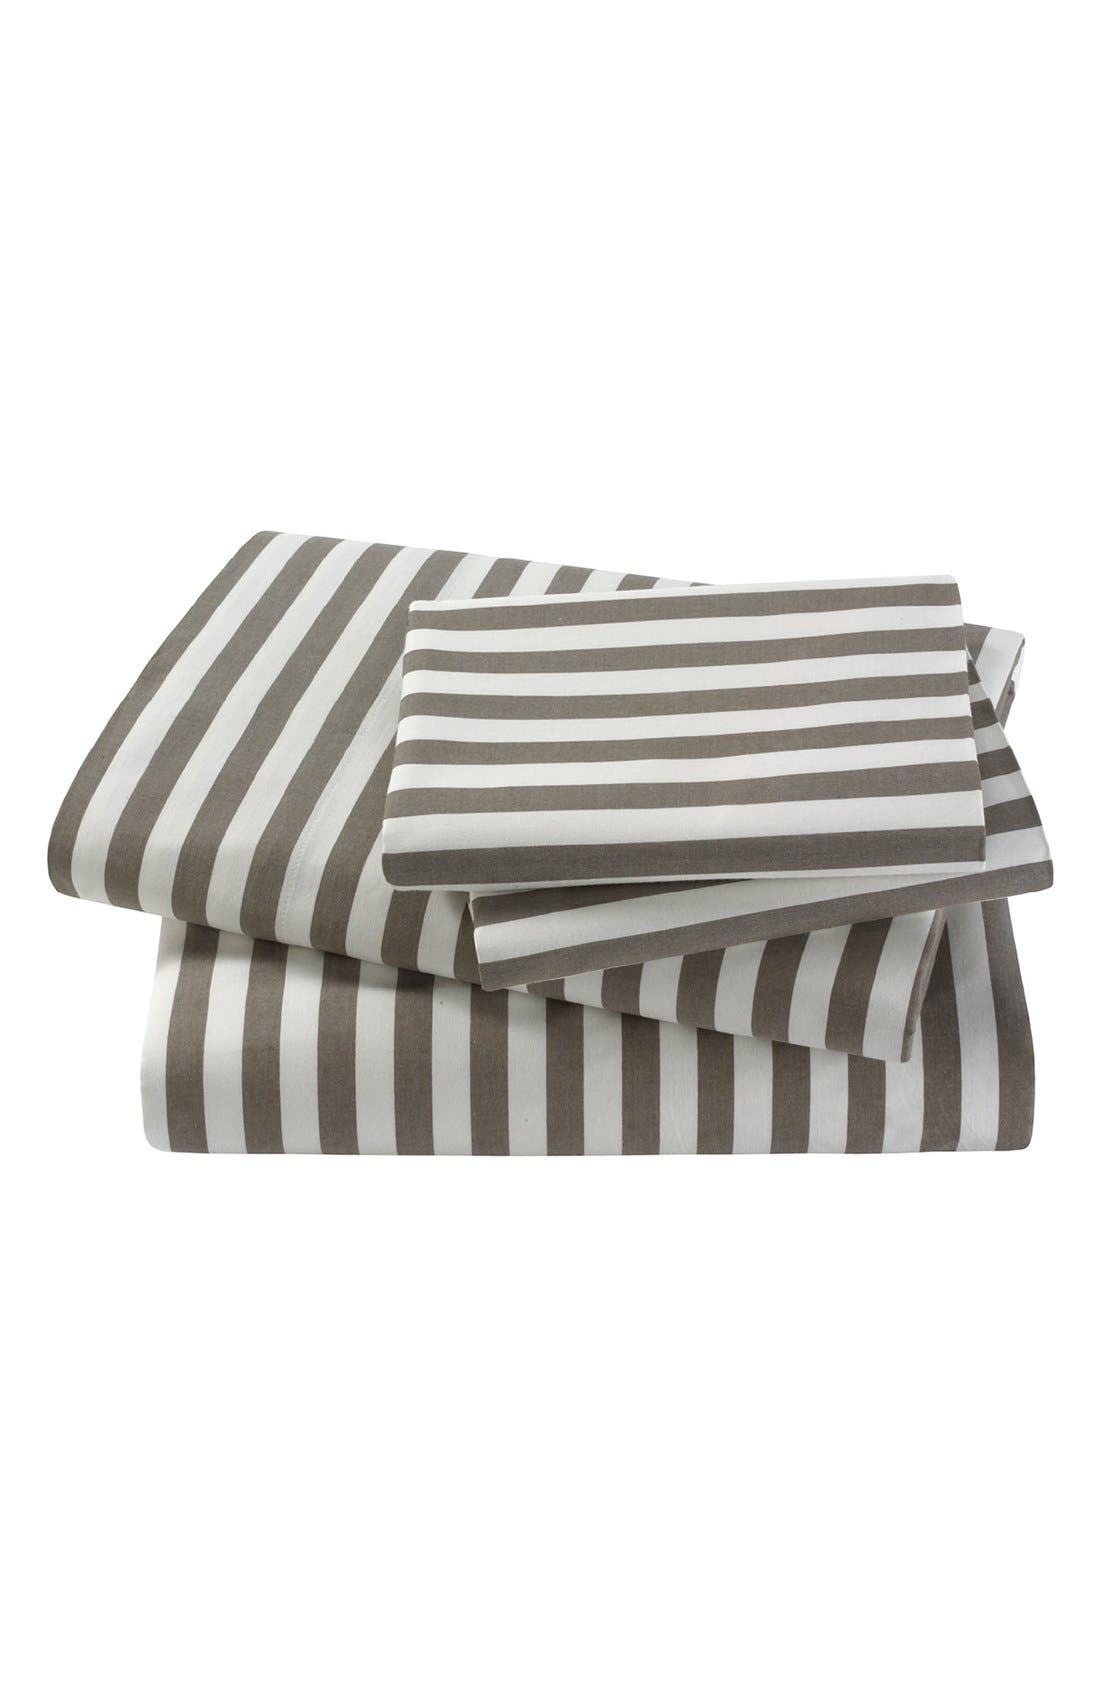 DwellStudio 'Draper Stripe' 300 Thread Count Sheet Set